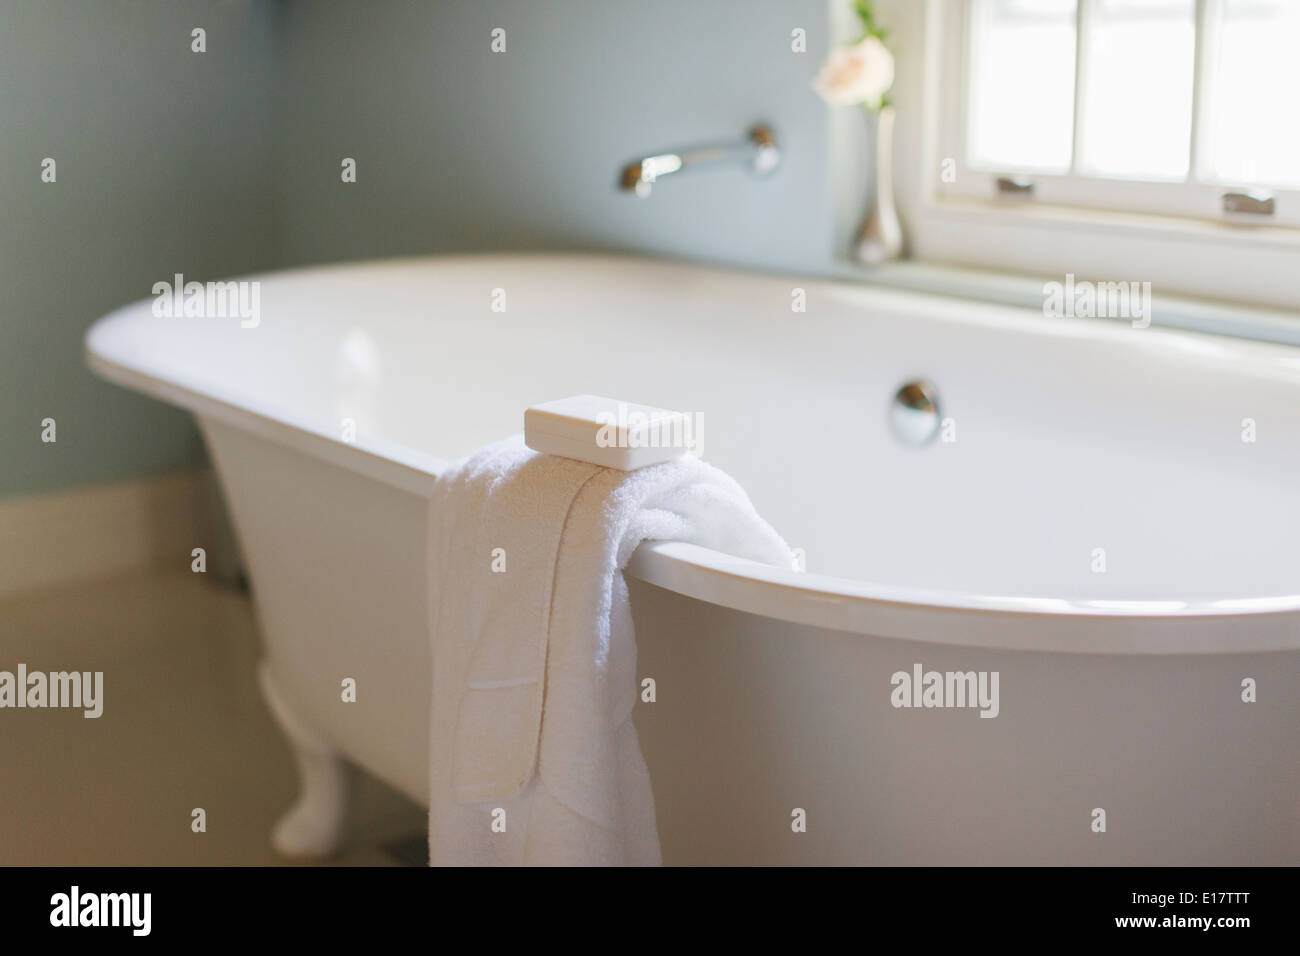 Bar soap and towel on ledge of claw foot tub Stock Photo: 69629304 ...